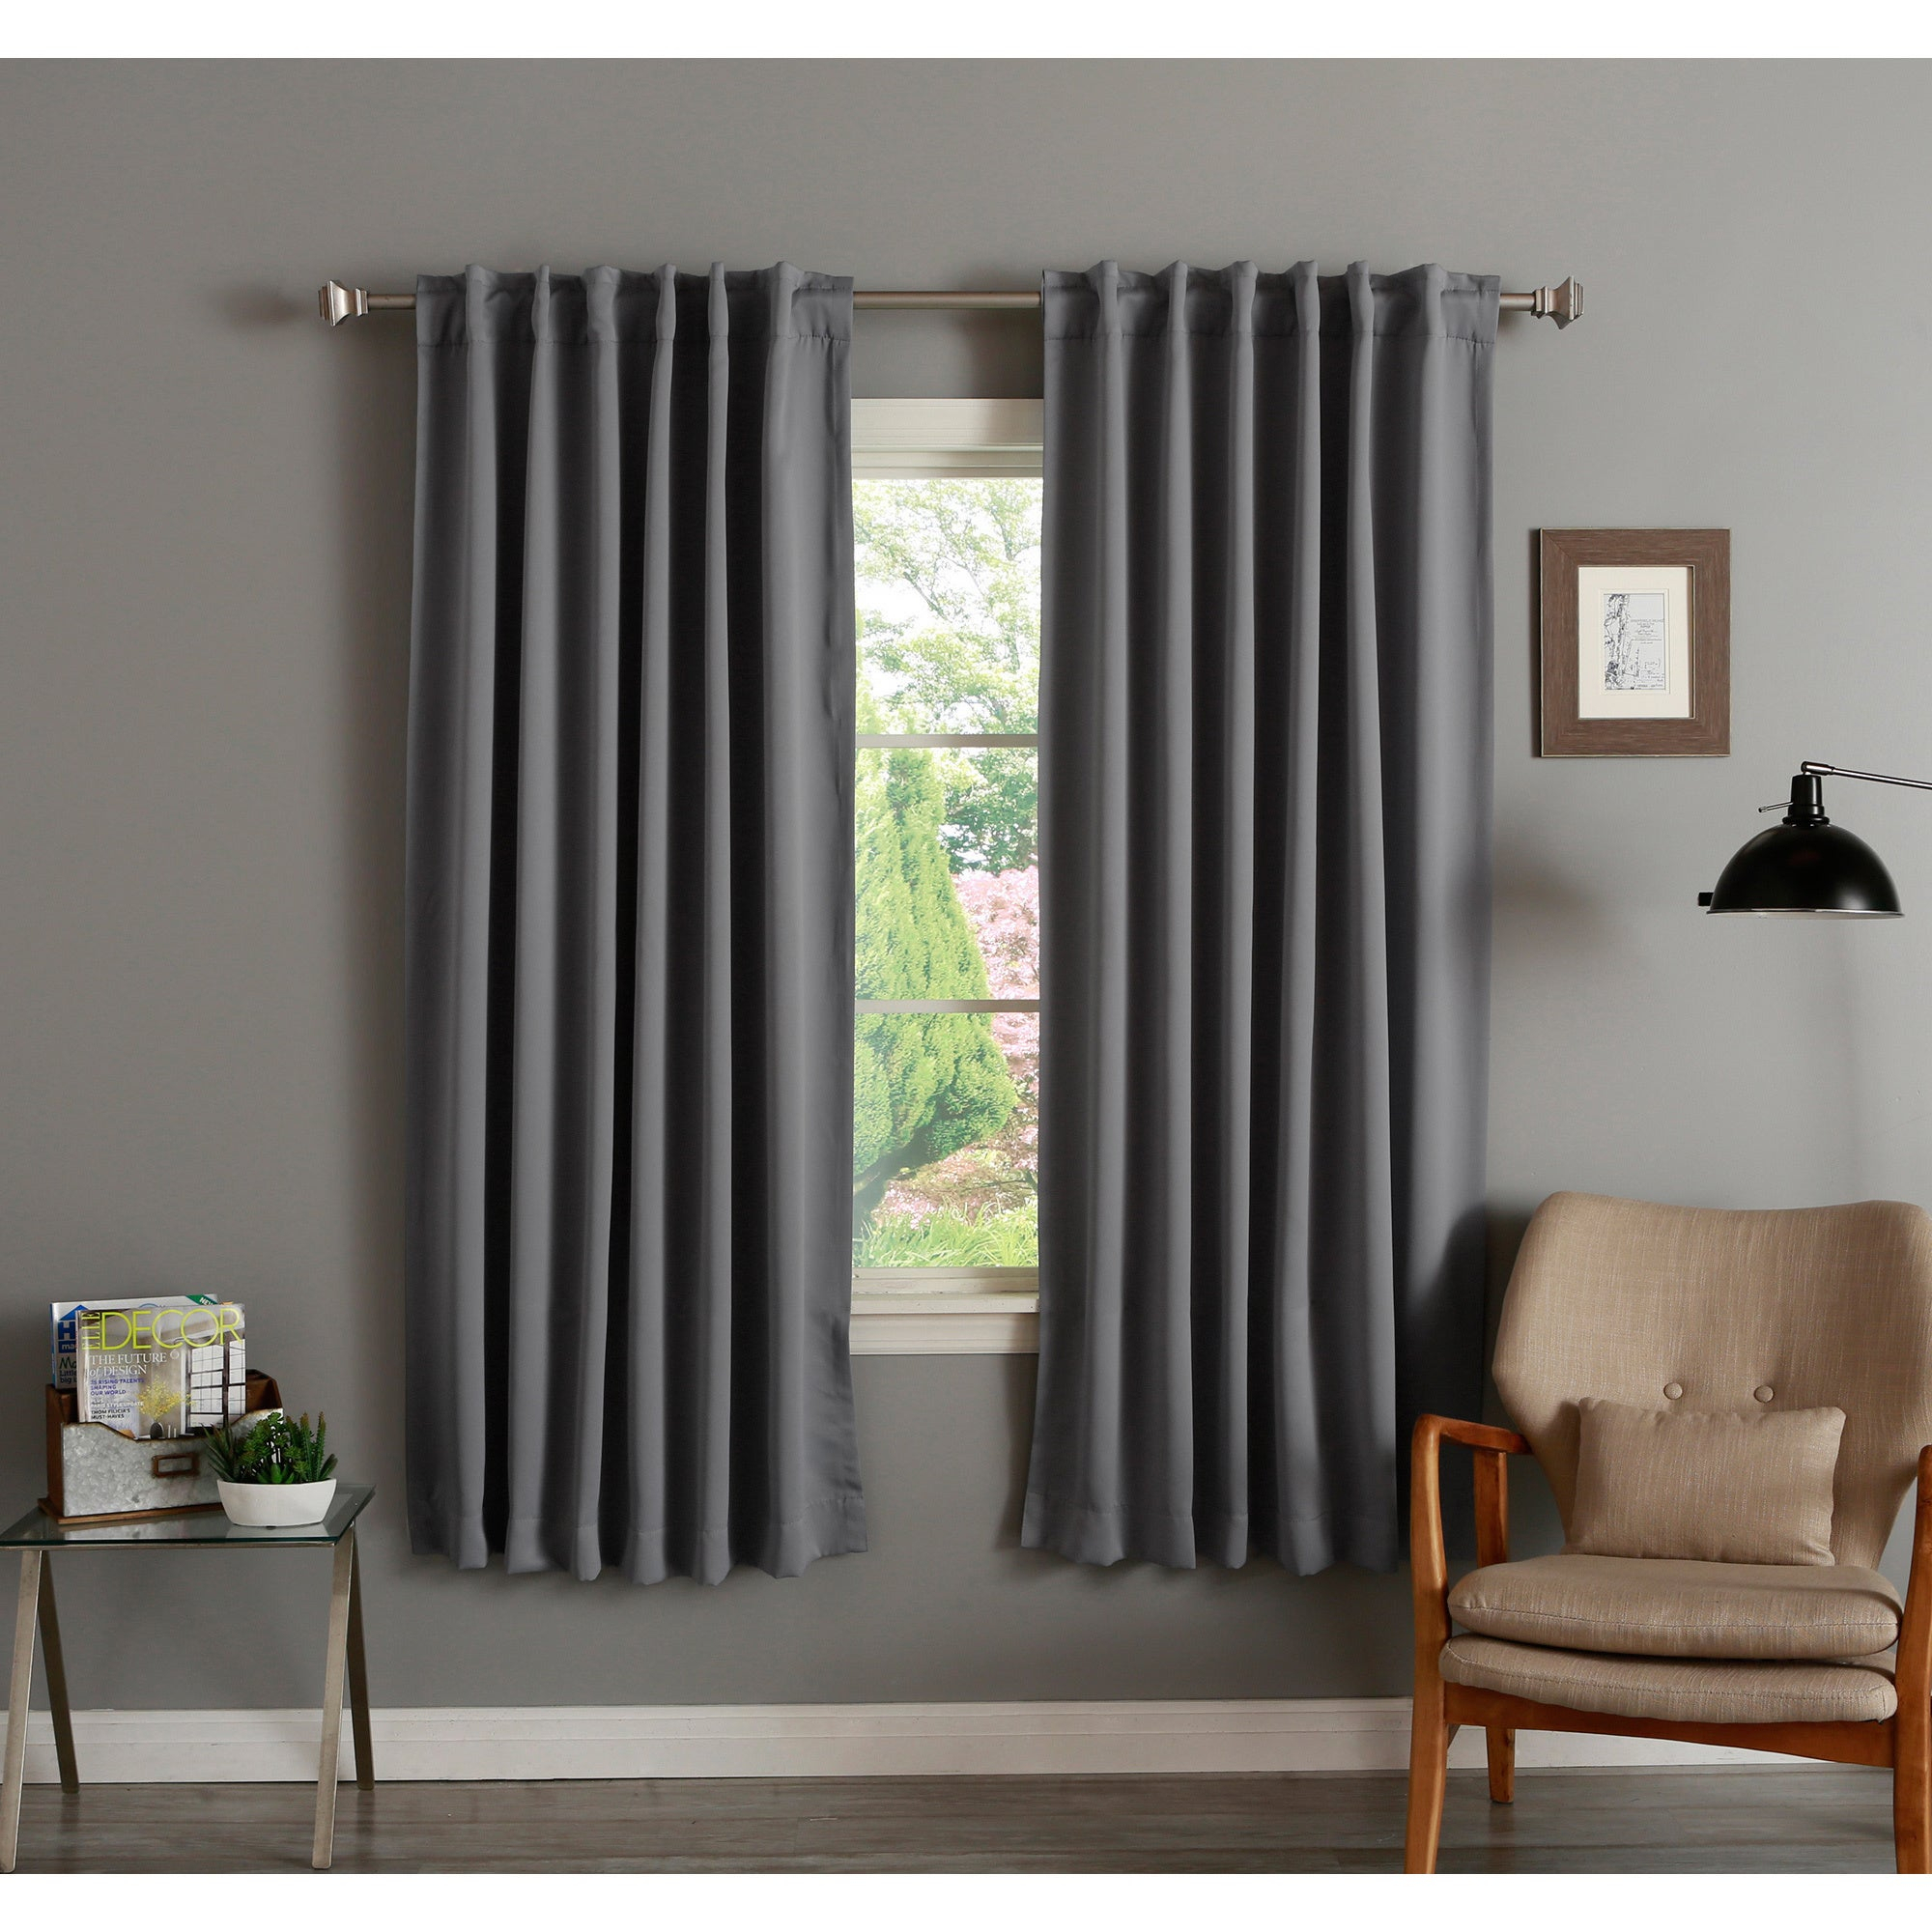 Curtain ~ Aurora Home Insulated Inch Thermal Blackout For Abstract Blackout Curtain Panel Pairs (Image 3 of 22)